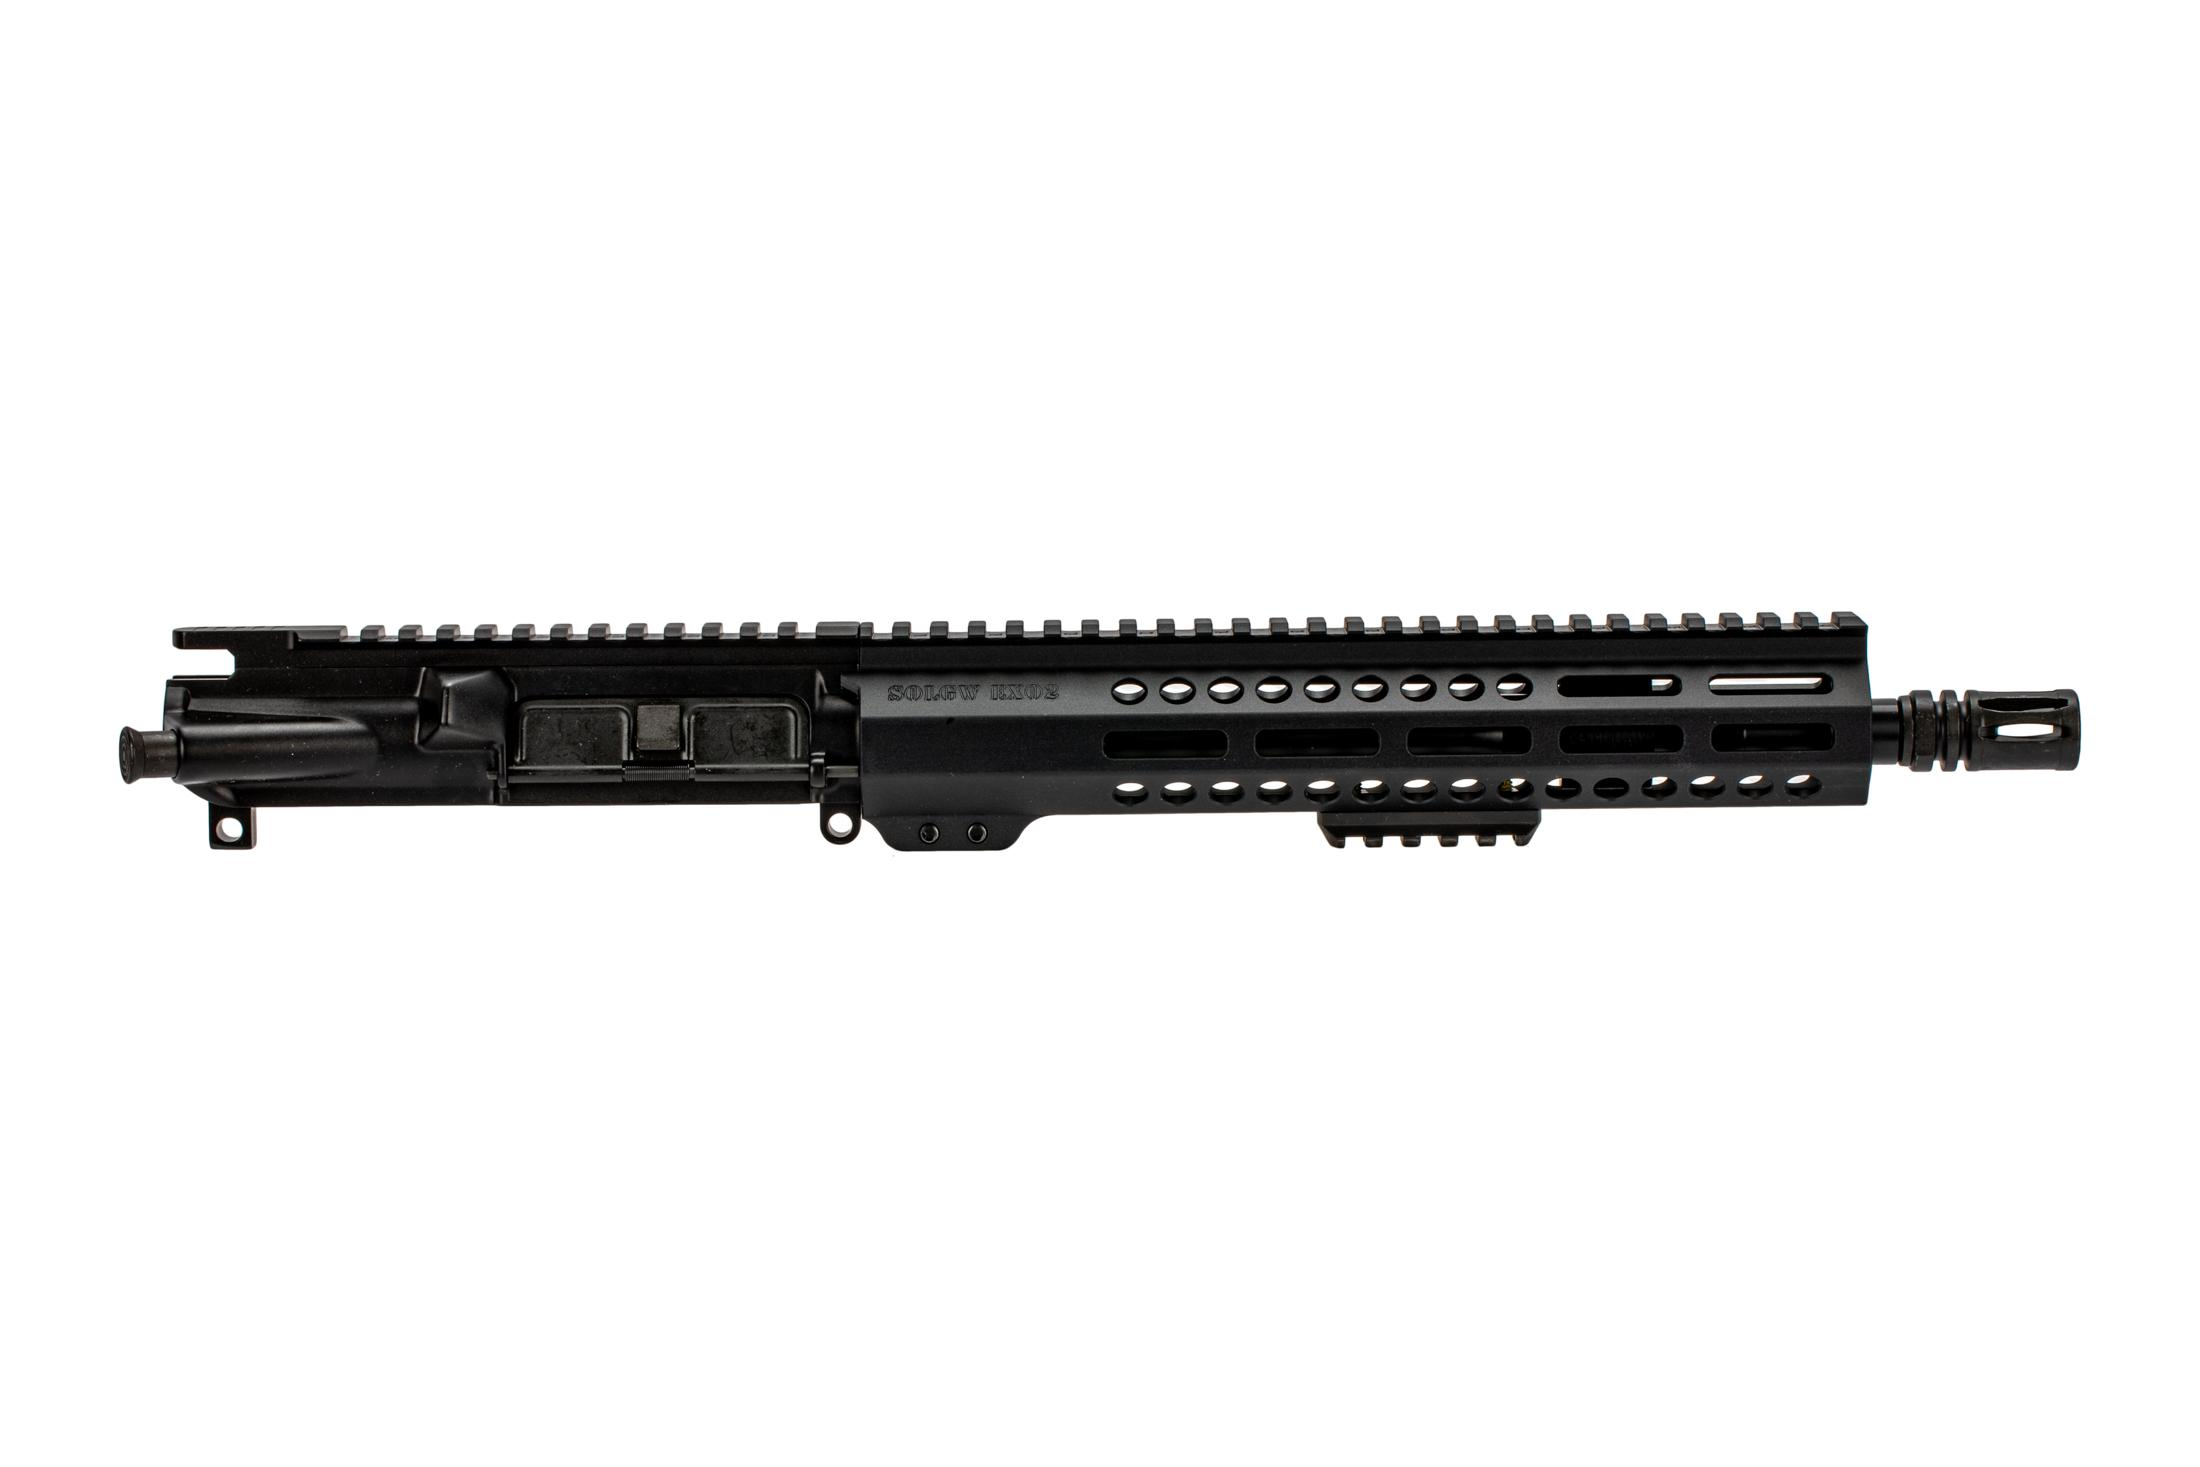 SOLGW 11.5 M4-EXO2 AR-15 barreled upper with Government contour 5.56 barrel and MLOK handguard